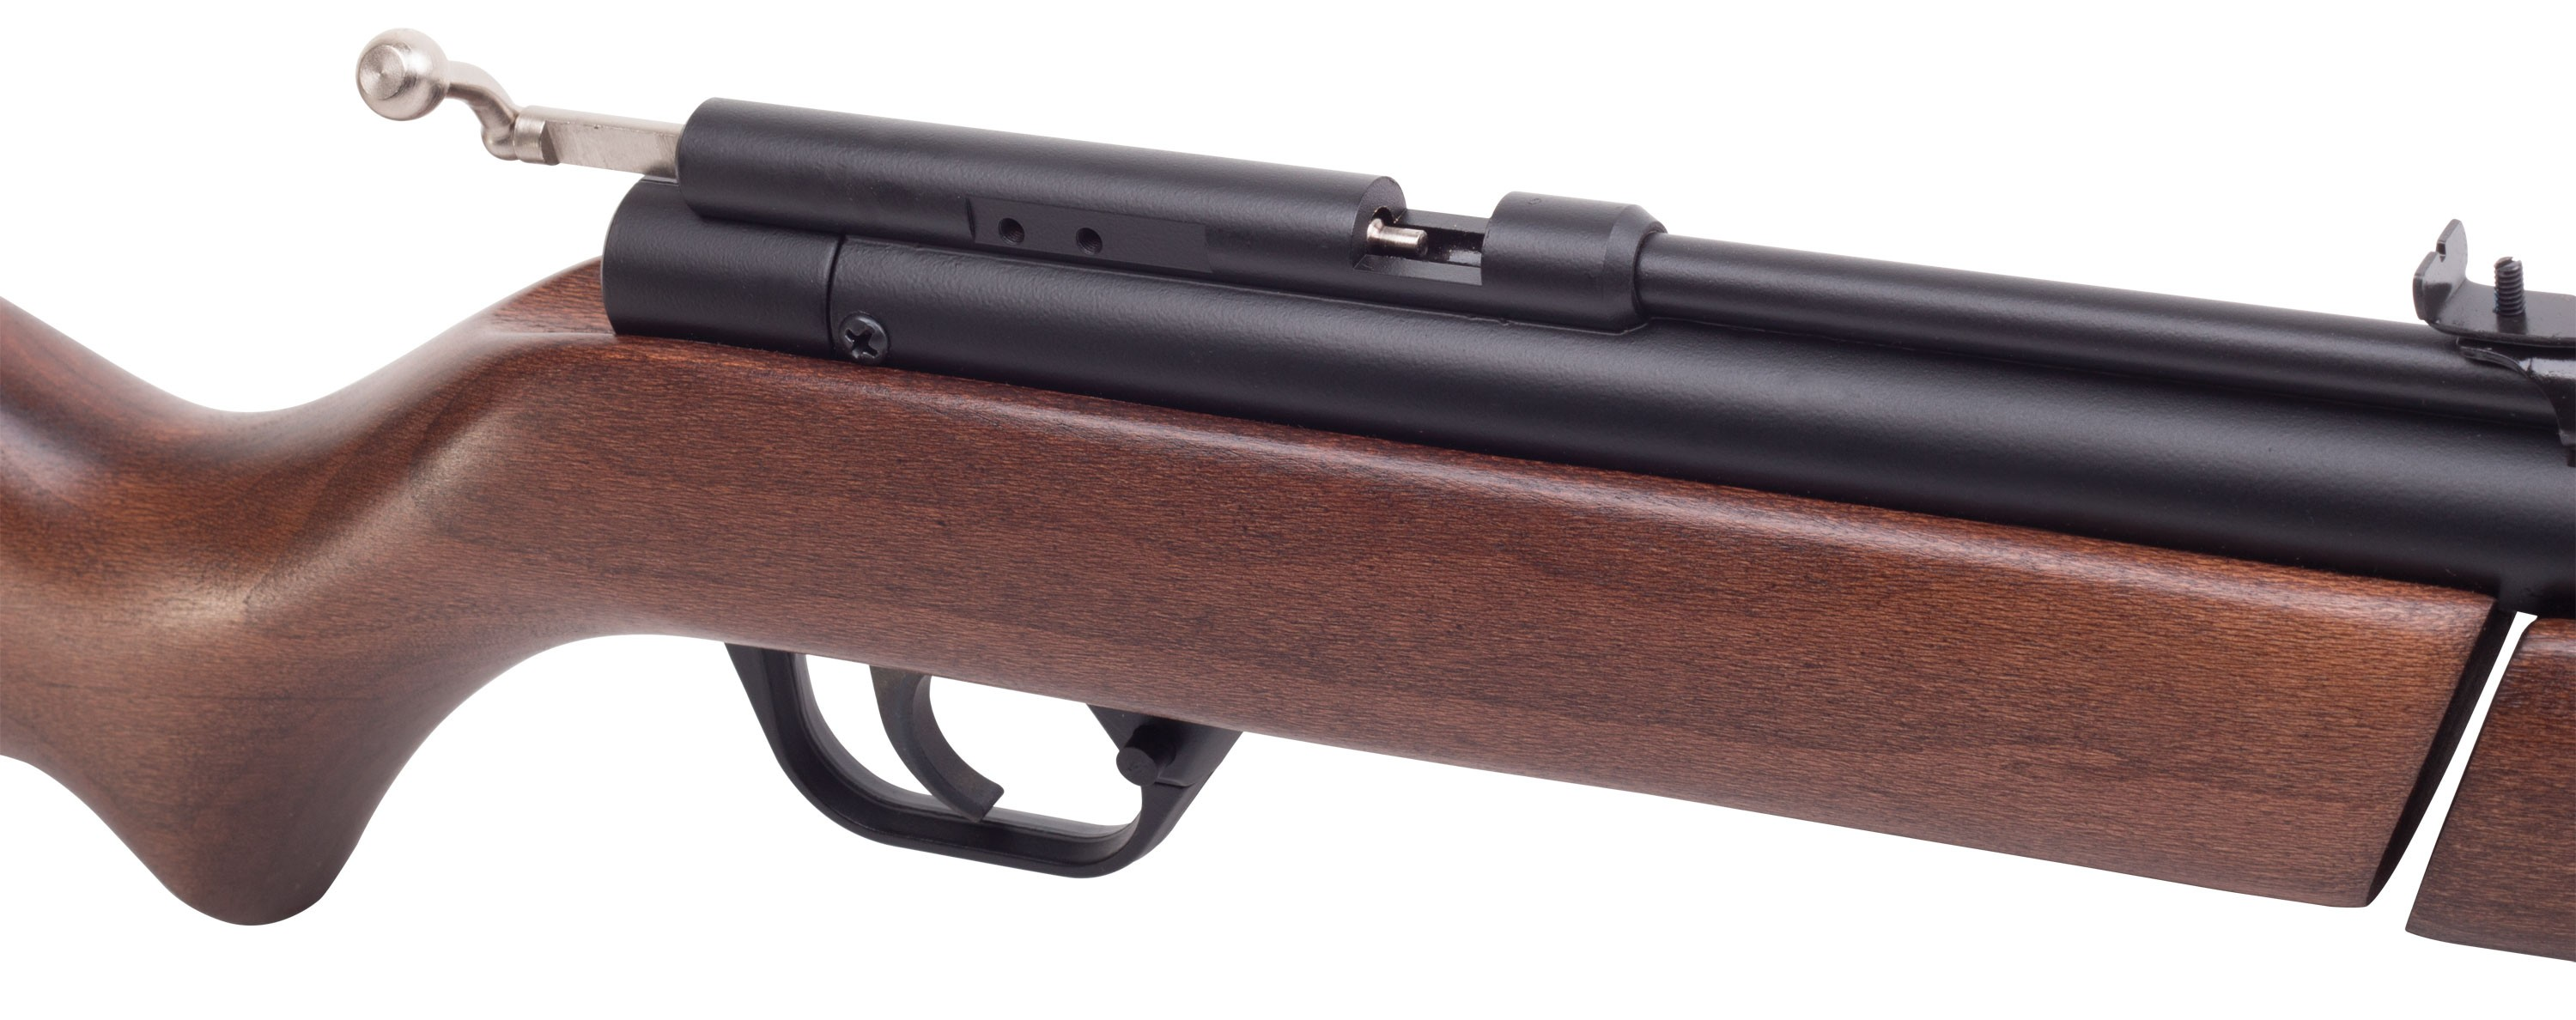 crosman benjamin 392 .22 air gun   crosman benjamin 392 .22 air gun review